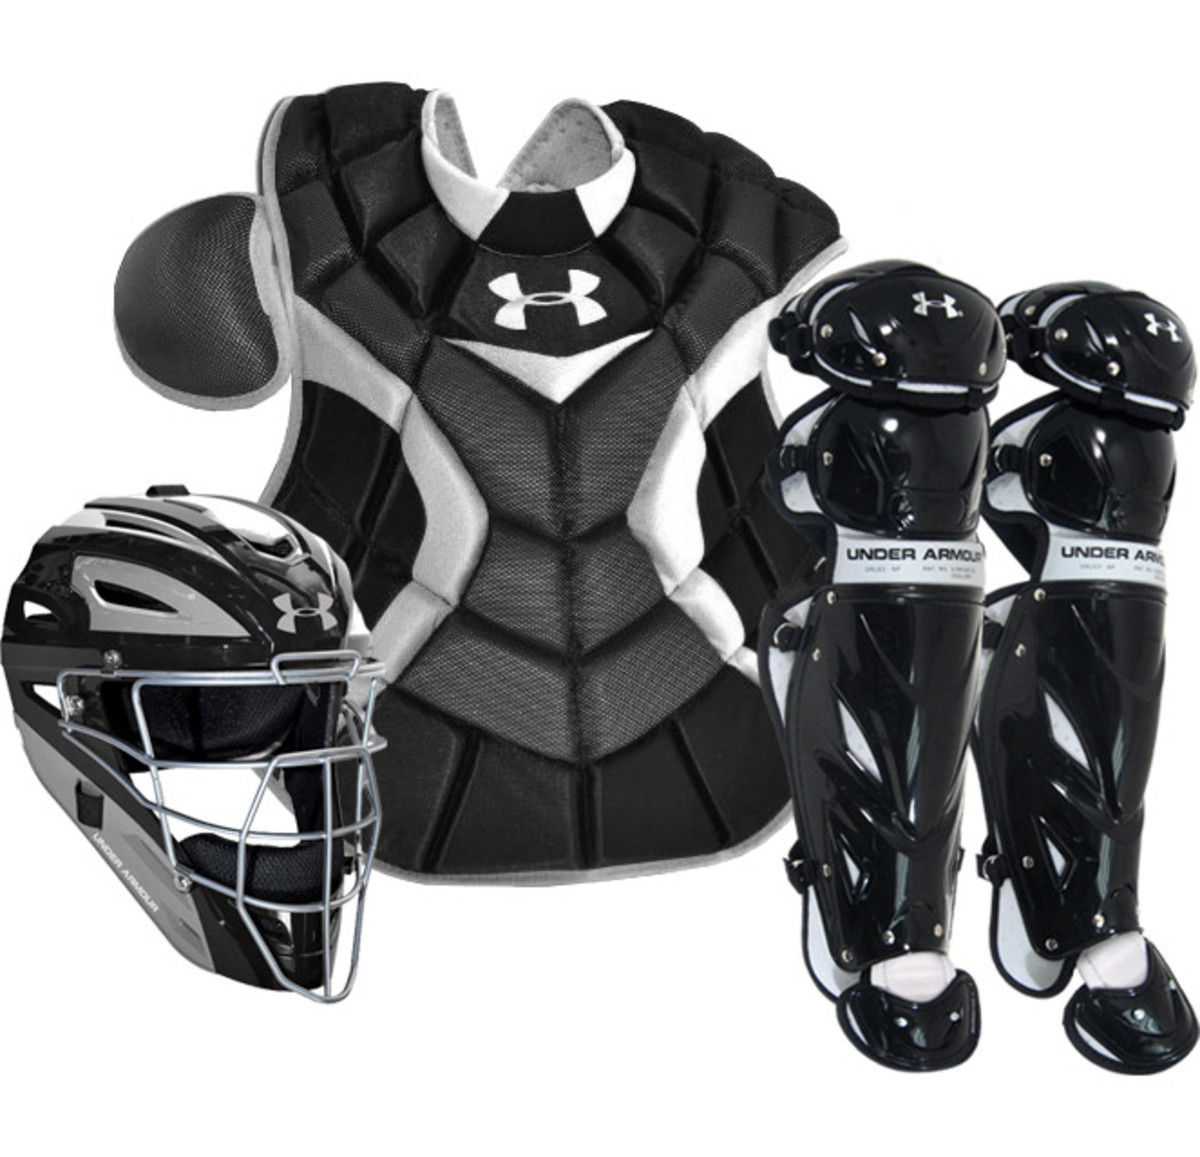 Buying new catcher gear in the winter will give them plenty of time to break it all in.